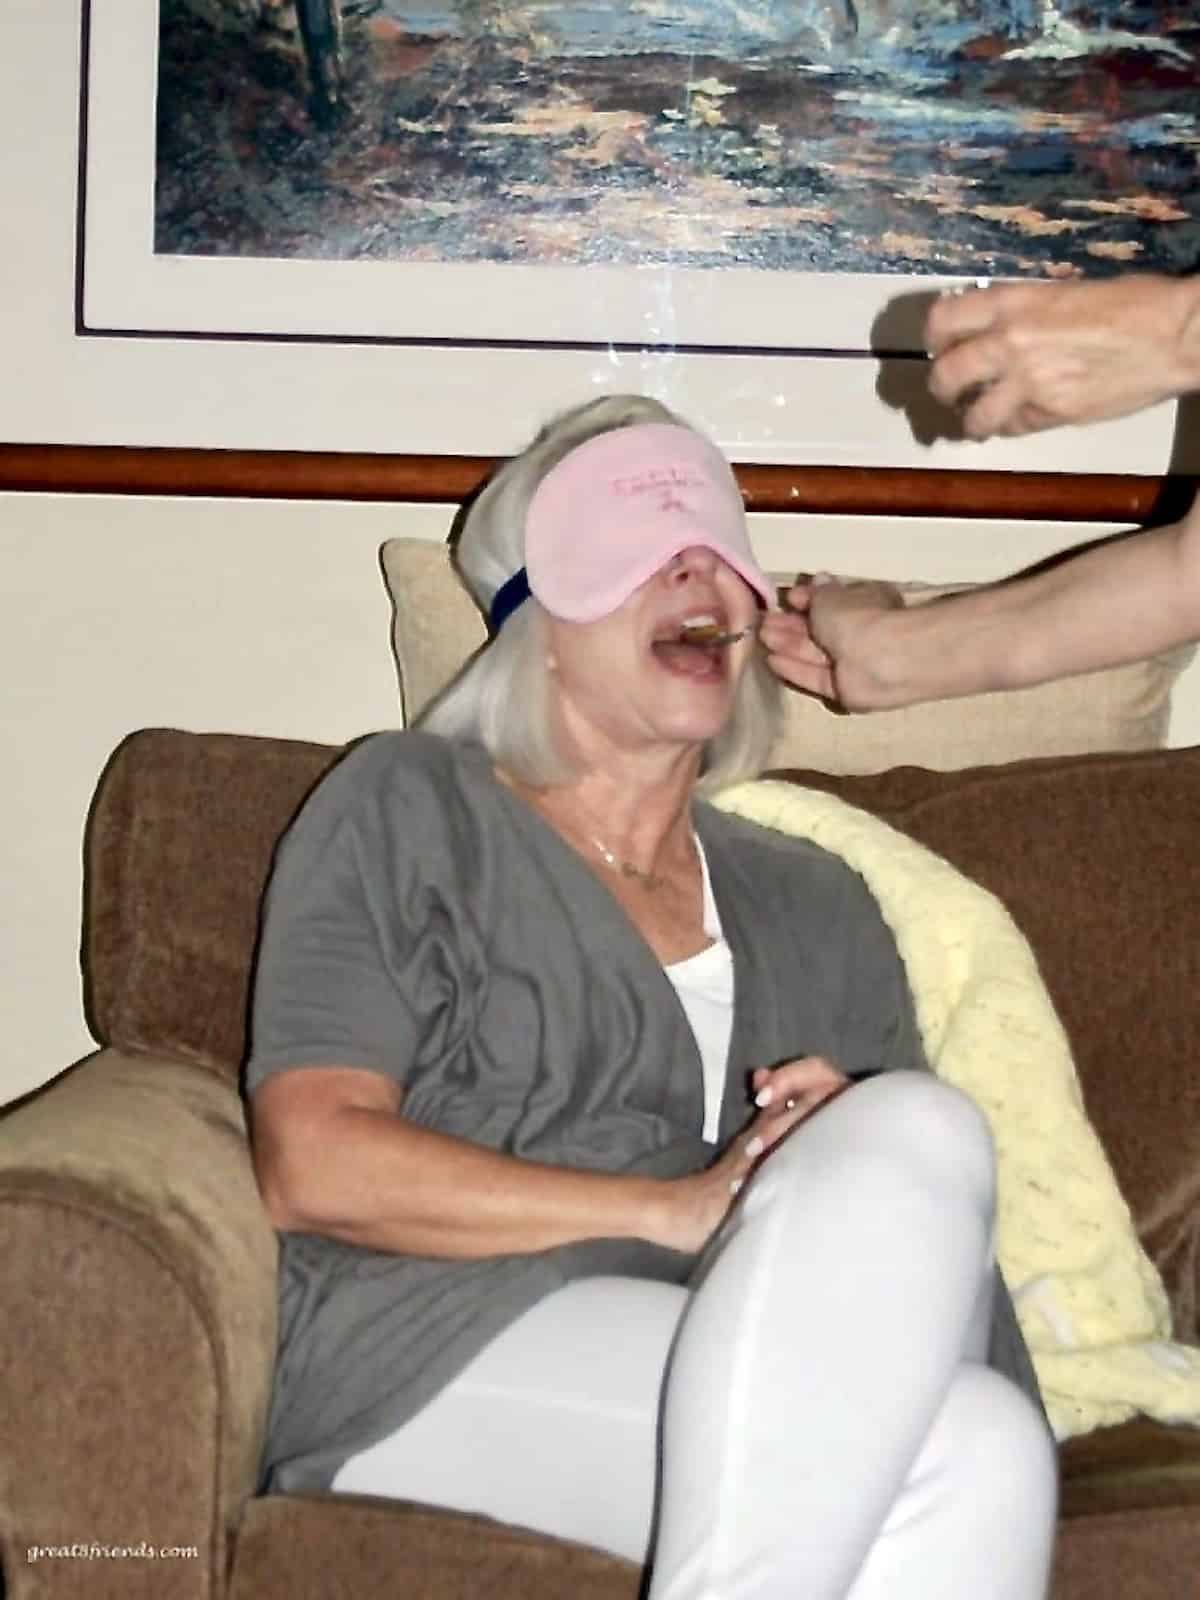 A woman with a pink blindfold on her eyes while someone is feeding her with a spoon.